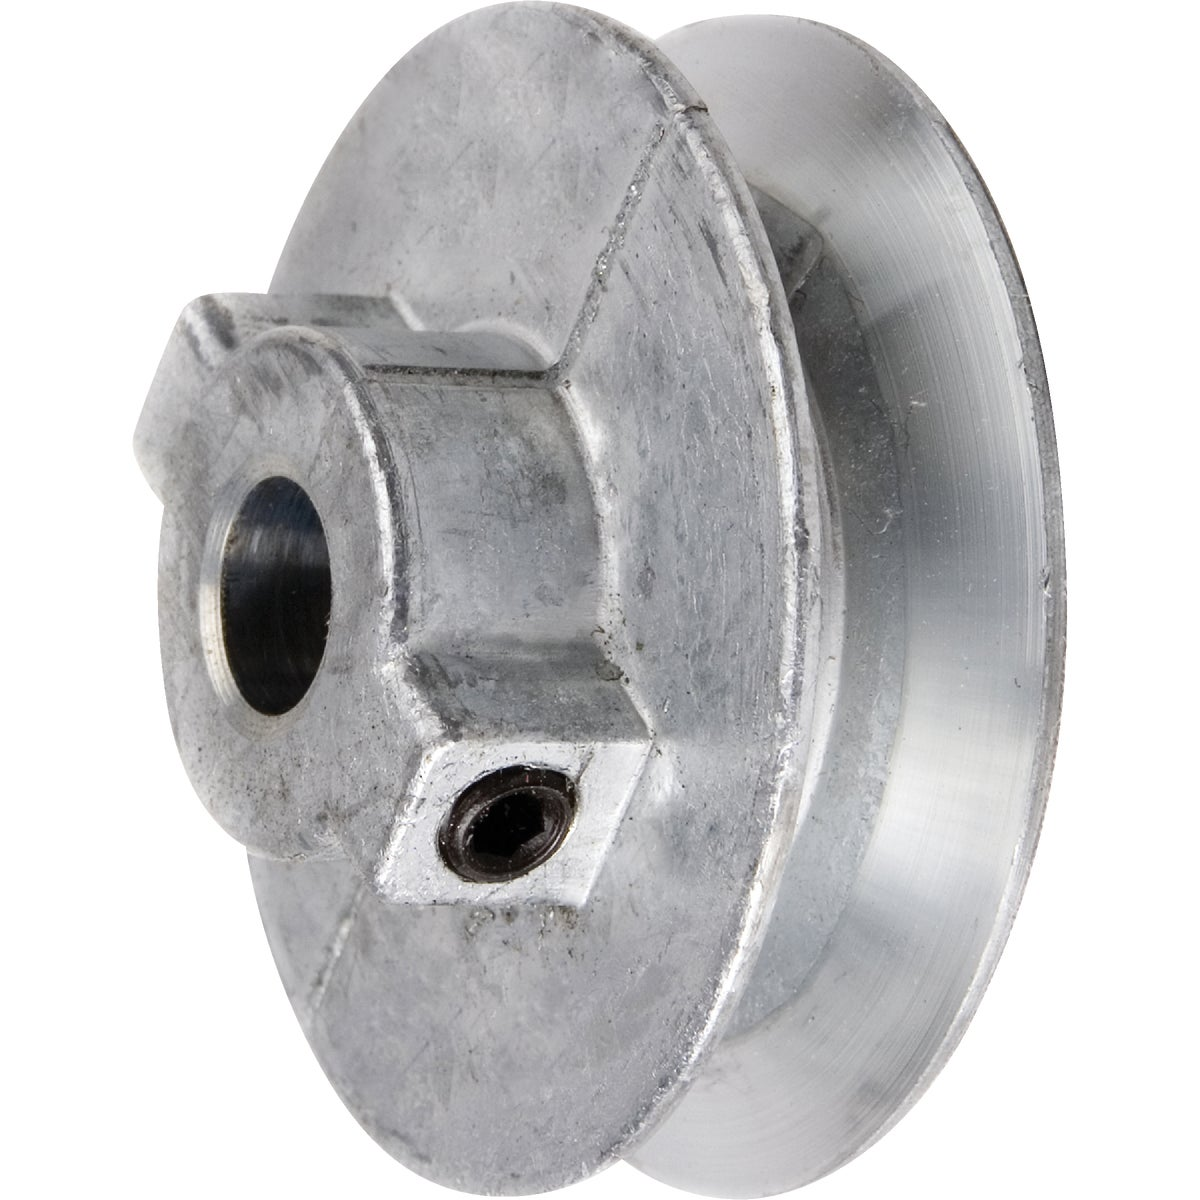 2-3/4X1/2 PULLEY - 275A5 by Chicago Die Casting